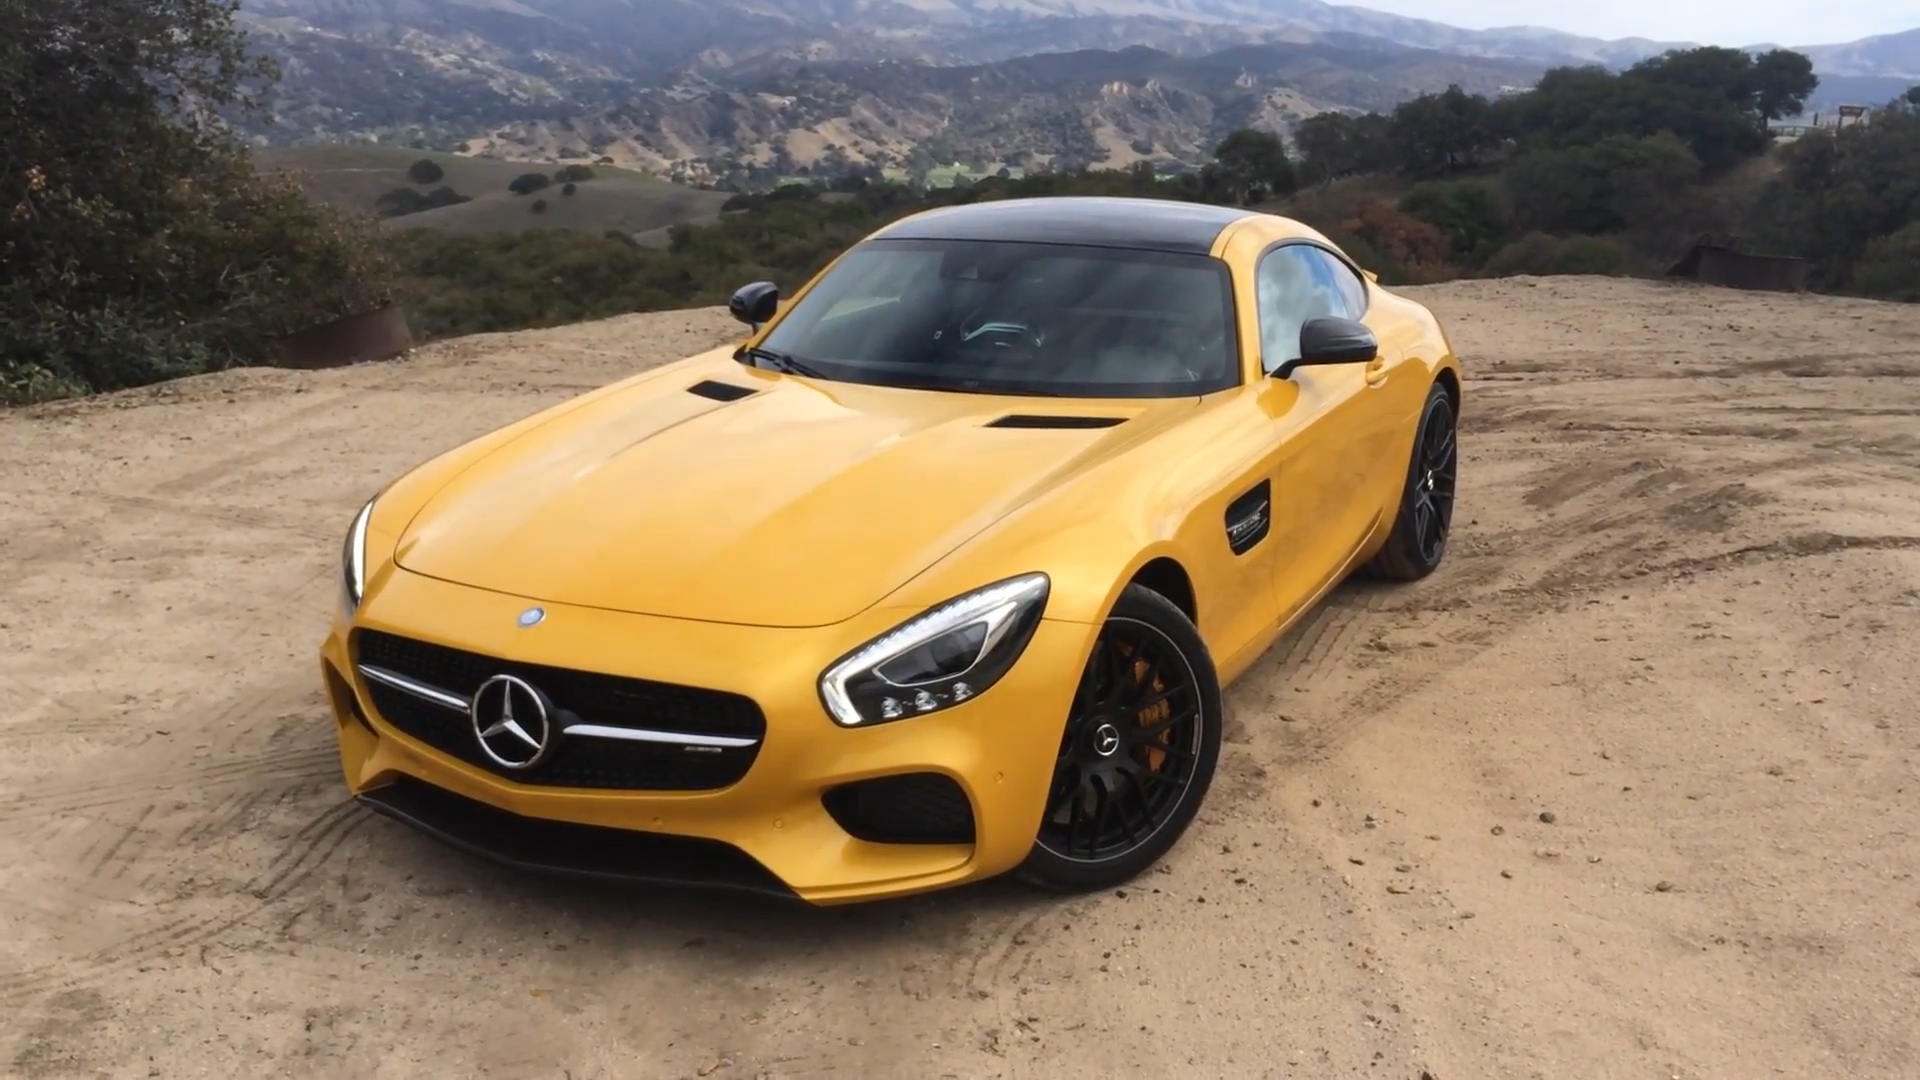 2016 Mercedes-AMG GT at Laguna Seca | On Location